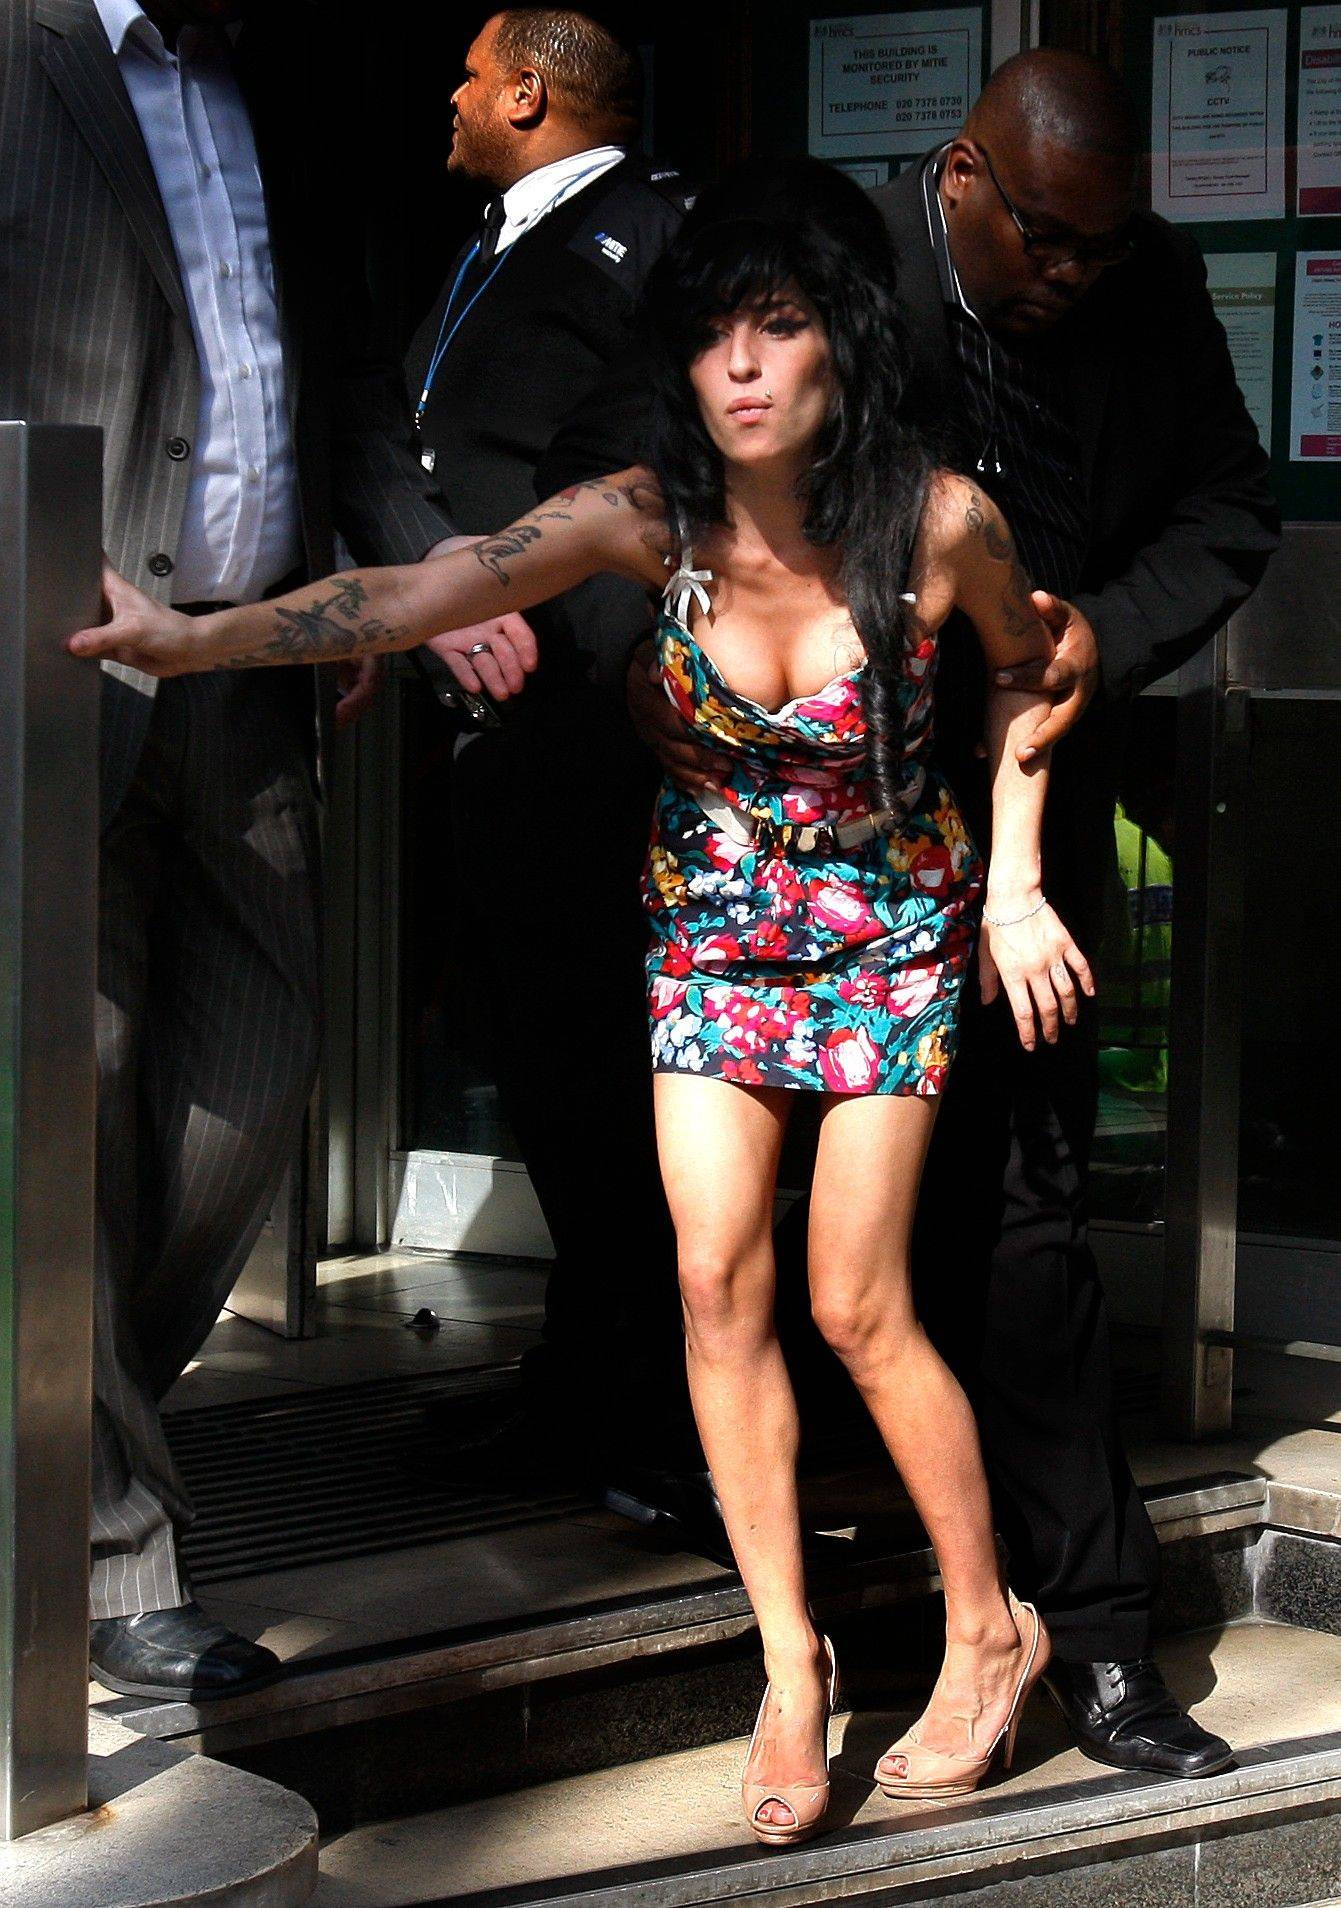 Amy Winehouse is assisted as she leaves Westminster Magistrates Court in London, where she pleaded not guilty to a charge of common assault, over an incident at a charity ball.